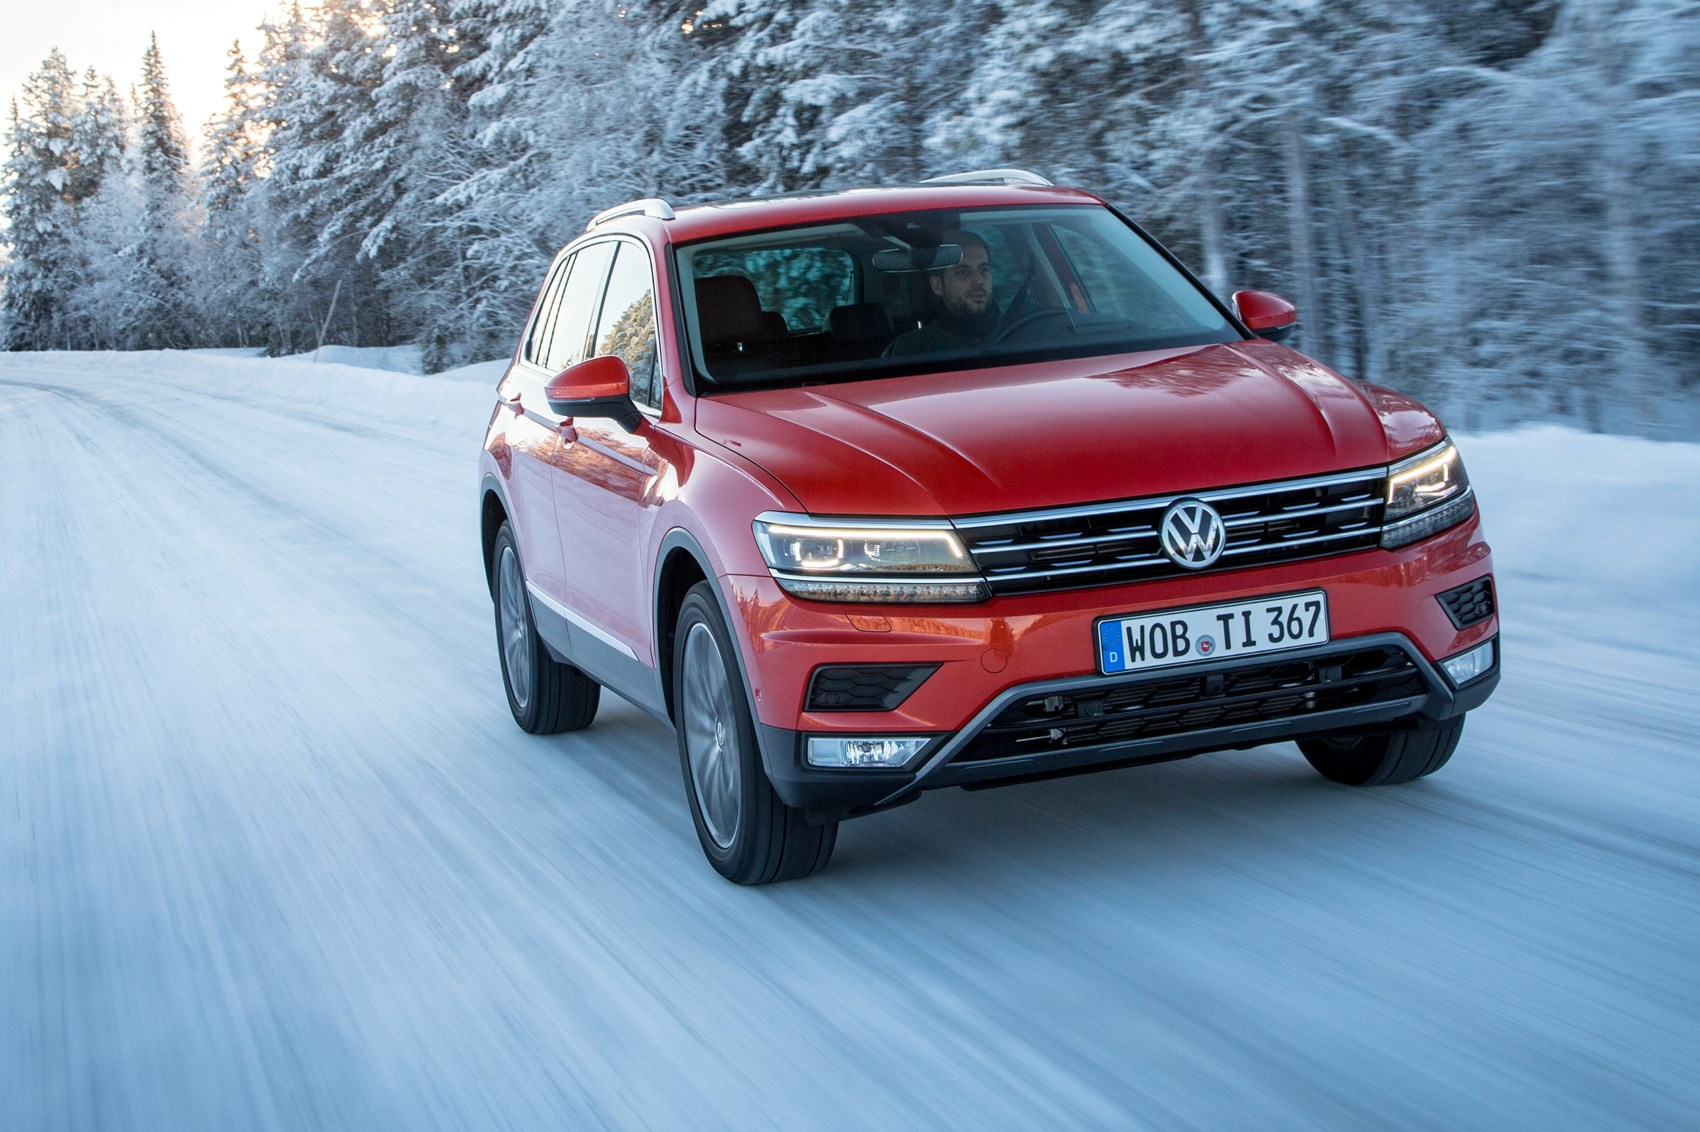 Lease Used Mercedes >> Ice to meet you: first off-road drive in the new 2016 VW ...